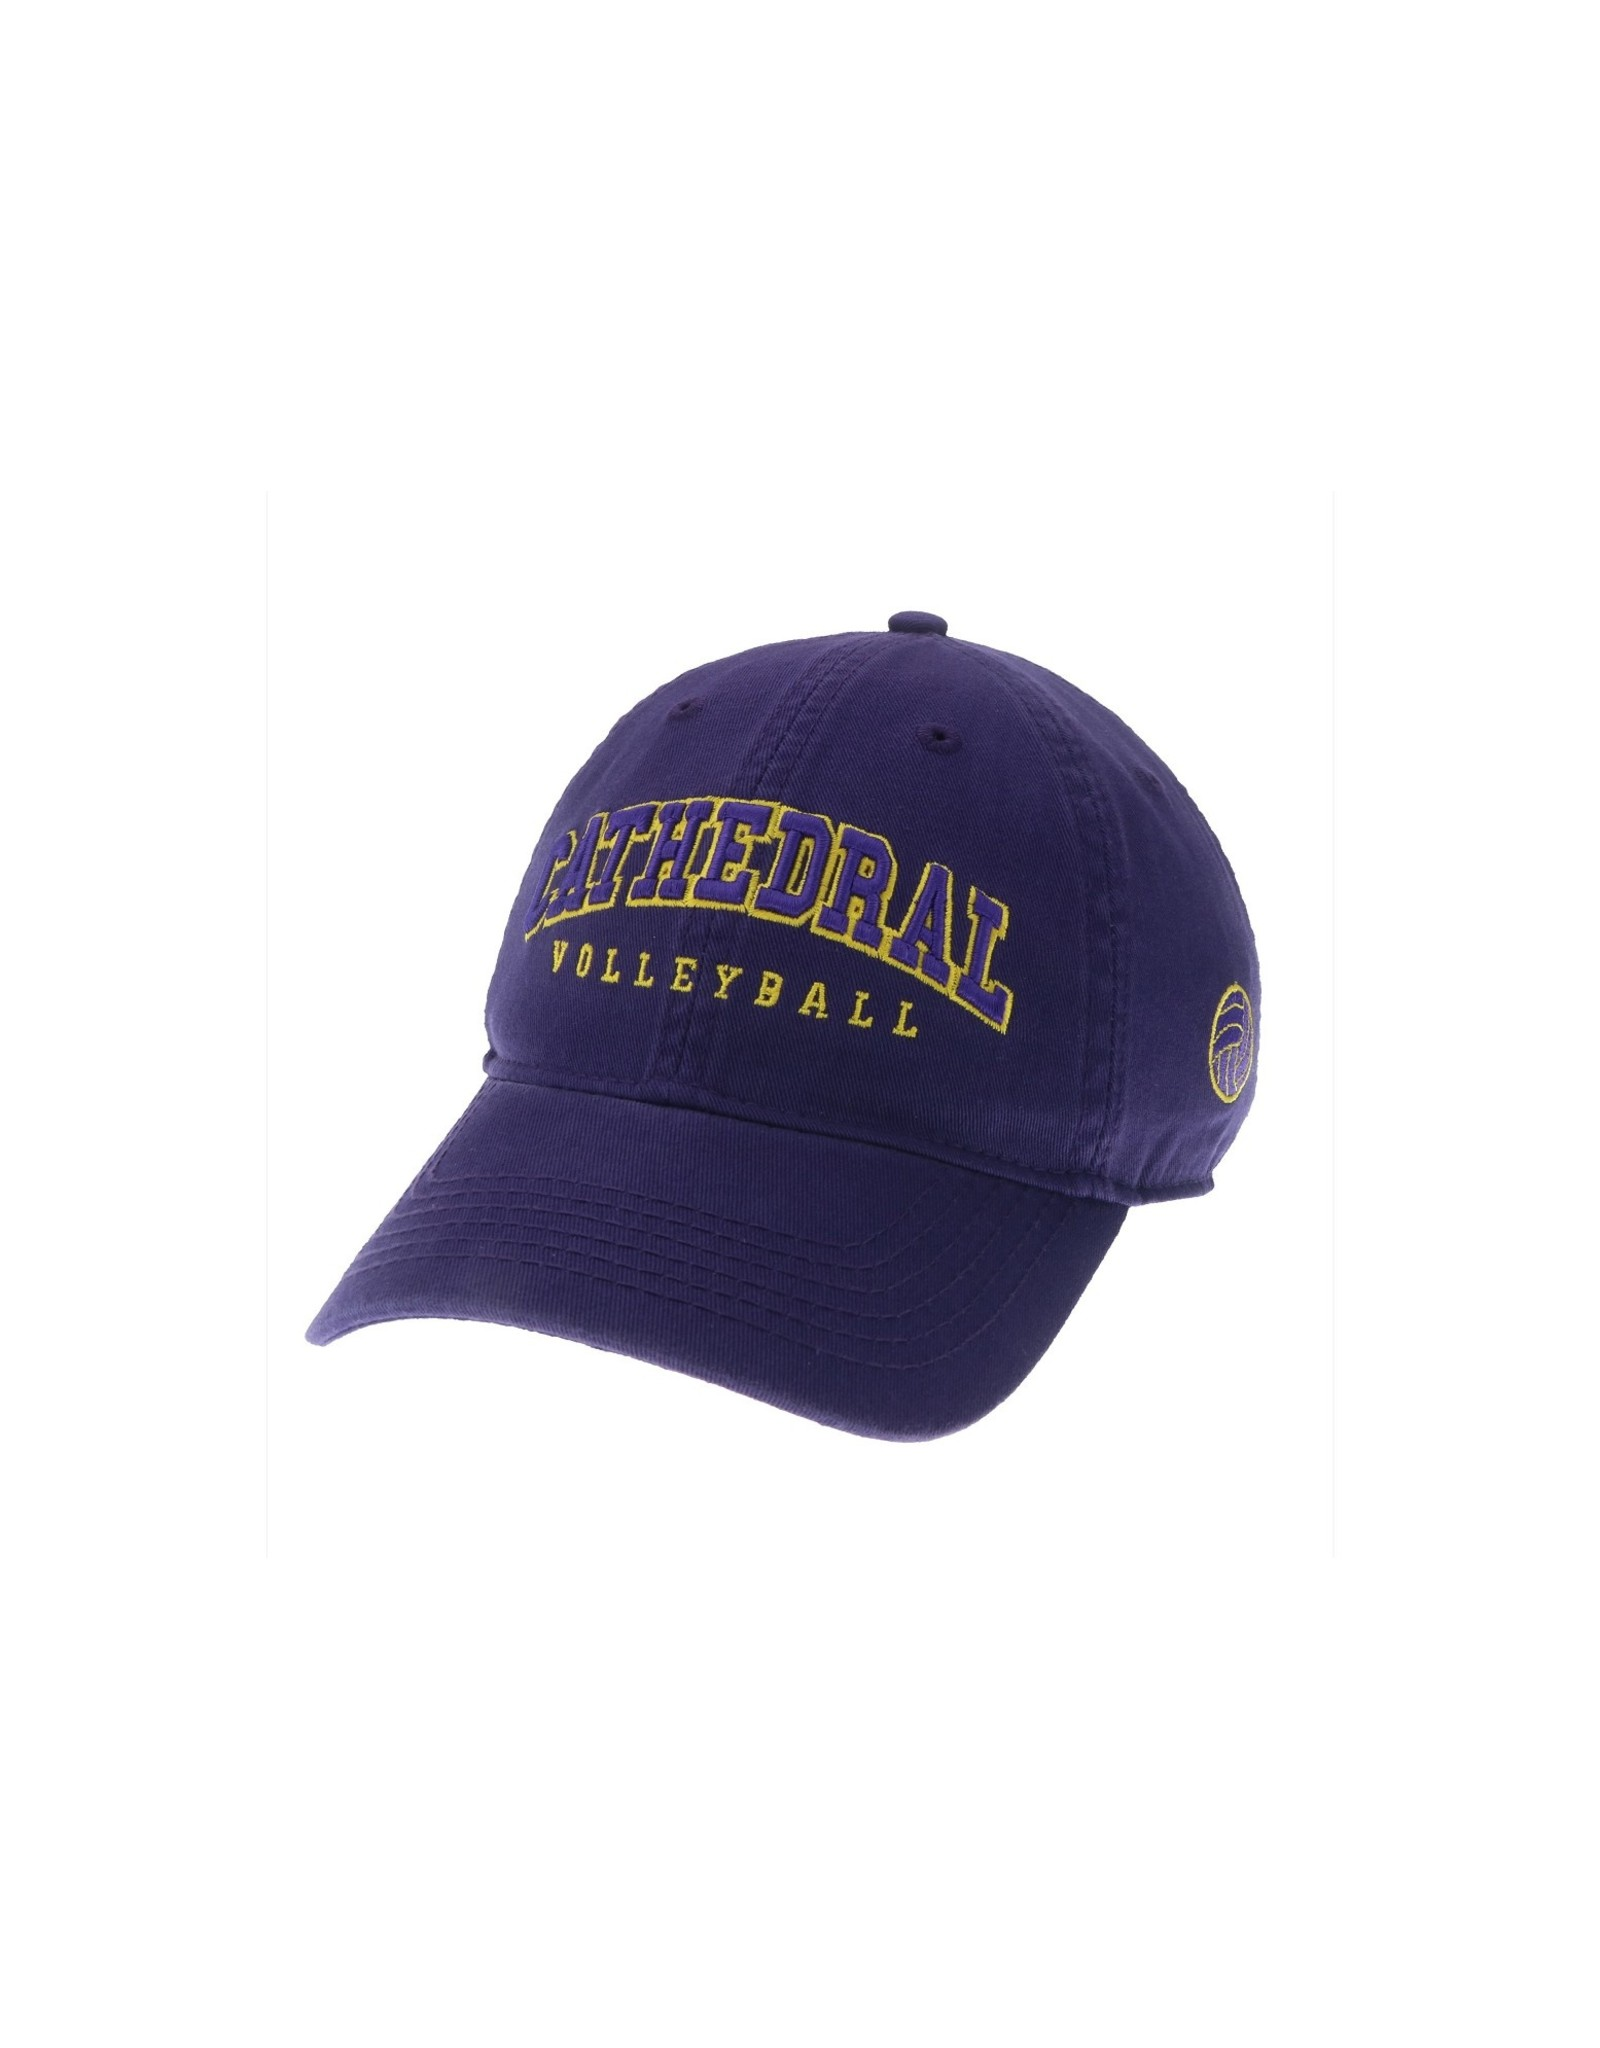 HAT-LEGACY-PUR VOLLEYBALL